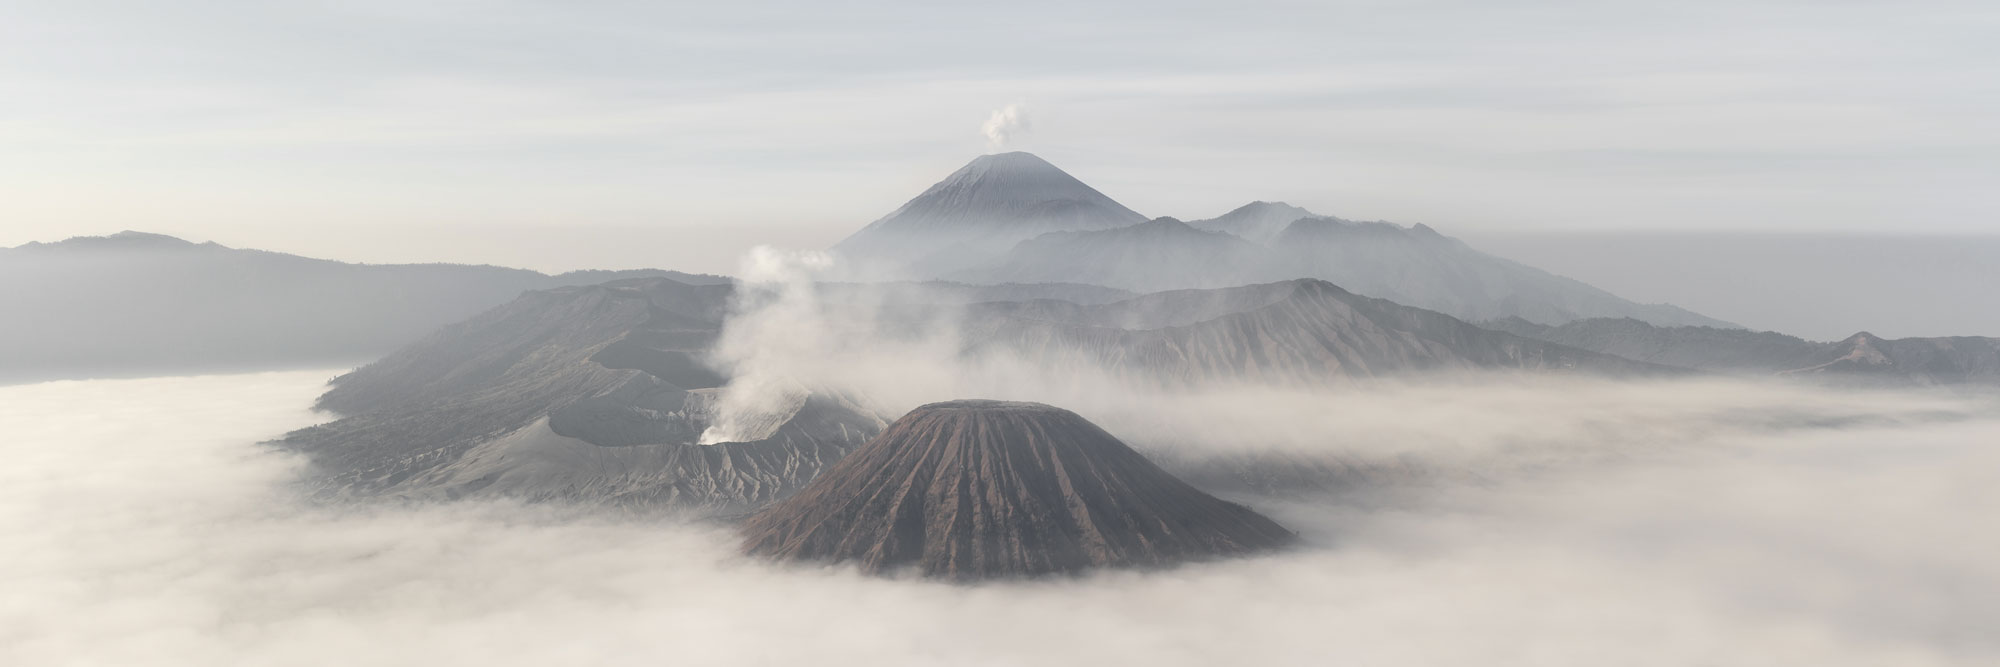 Panorama of Mount Bromo on a misty day cloud inversion